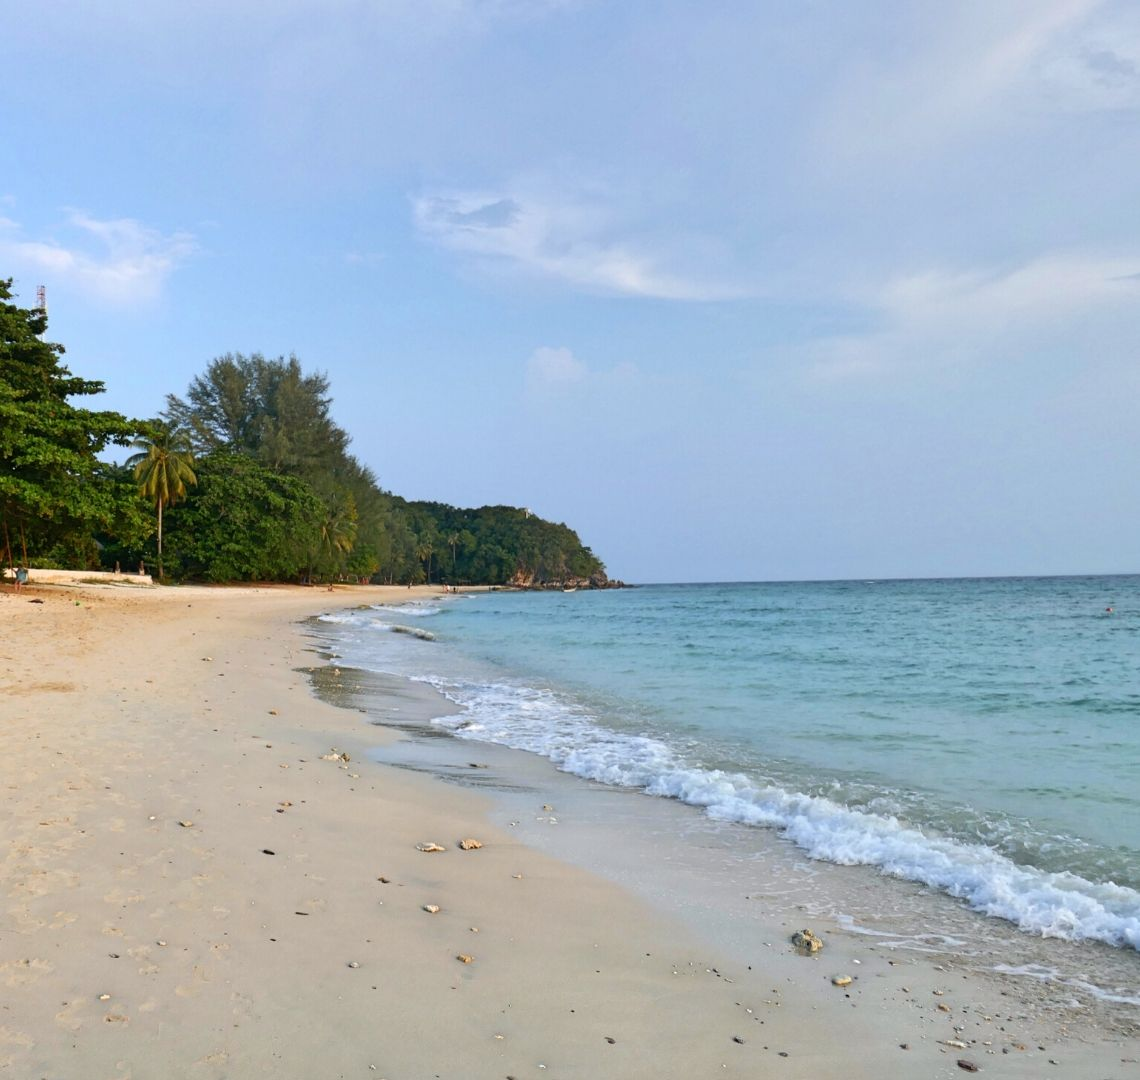 Best Secret Islands In Malaysia - Kapas - there are a few rocks strewn along a sandy beach. There are some trees and a palm tree further down the beach. A small wave is breaking on the beach in the middle of the image and to the right is the sea which is turquoise.